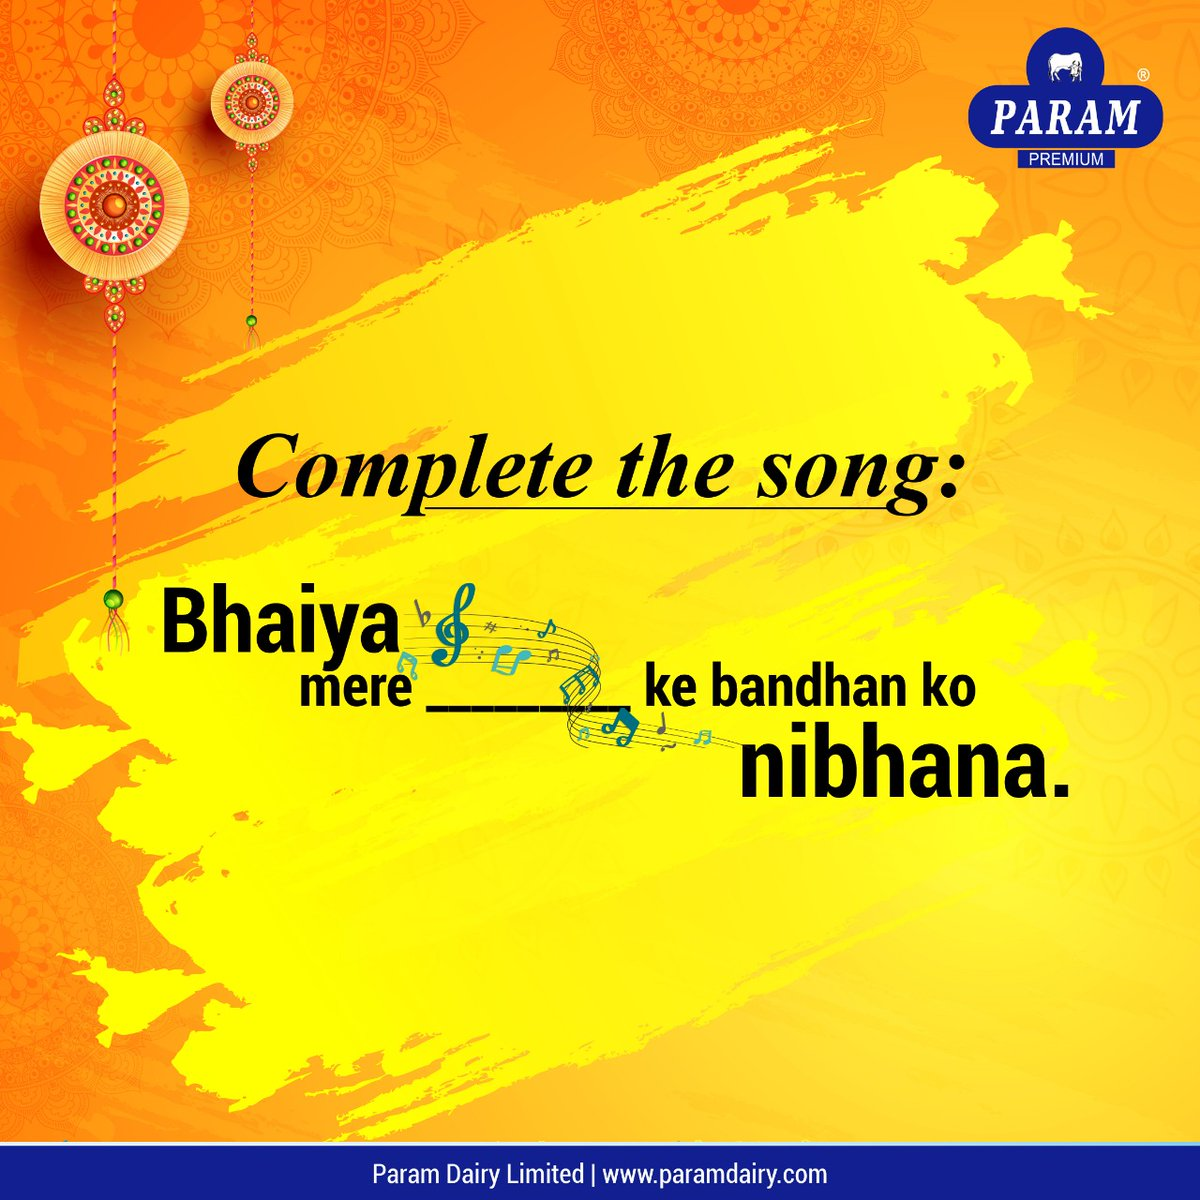 In this Raksha Bandhan #Contest, we are trying to keep our followers #entertained and #engaged with a small #Activity. #Complete the famous #song and #comment your answer. #paramdairyindia #ContestAlert #rakshabandhan #gifts #foodindustry #siblings #care #HealthyEating #gamepic.twitter.com/tPA9Ud1ED4